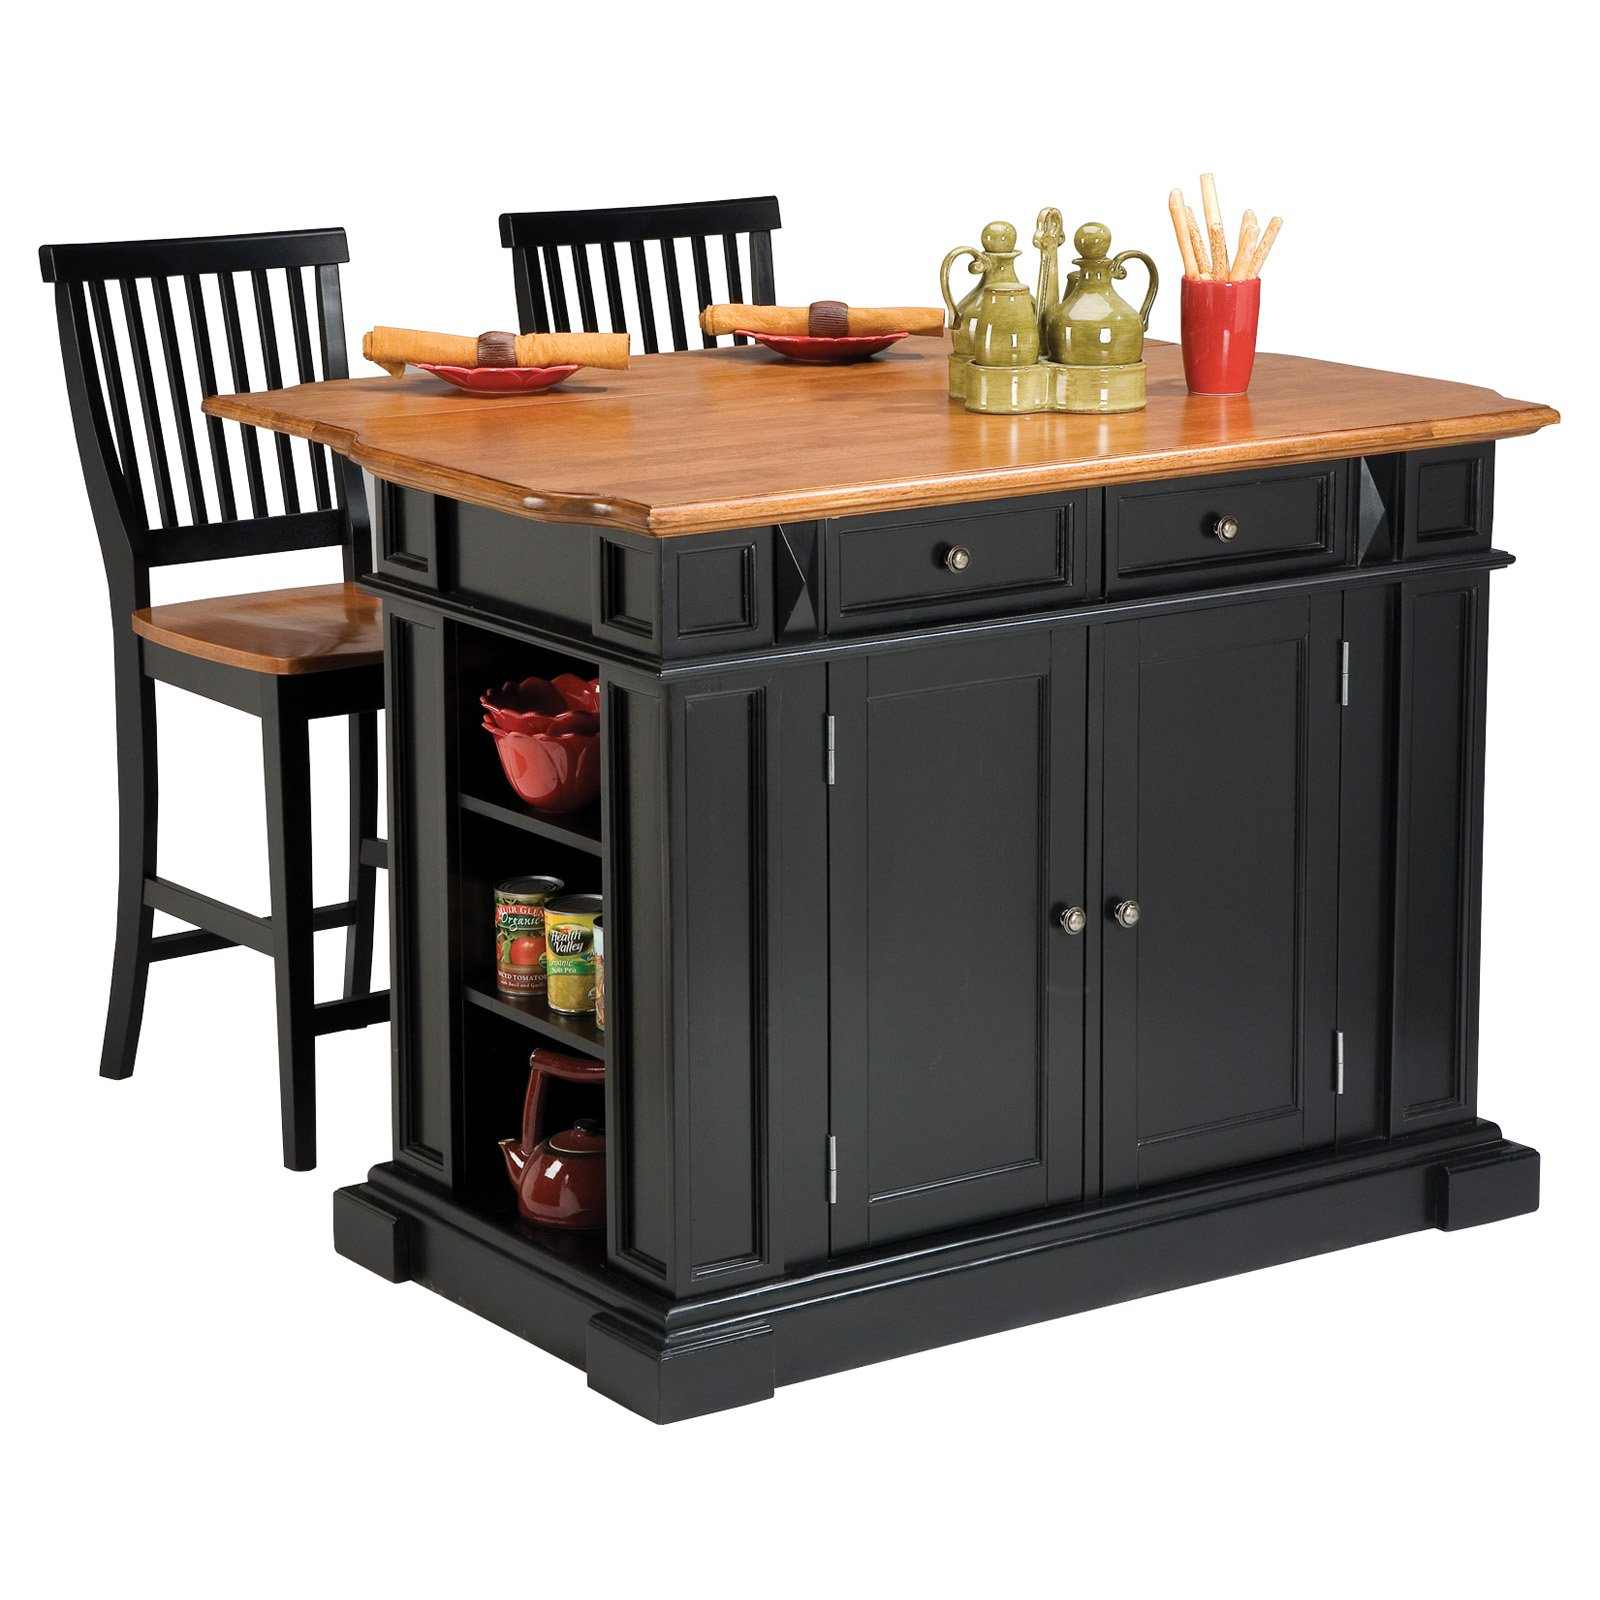 Portable Bar Island : The attractive black kitchen island completed by back